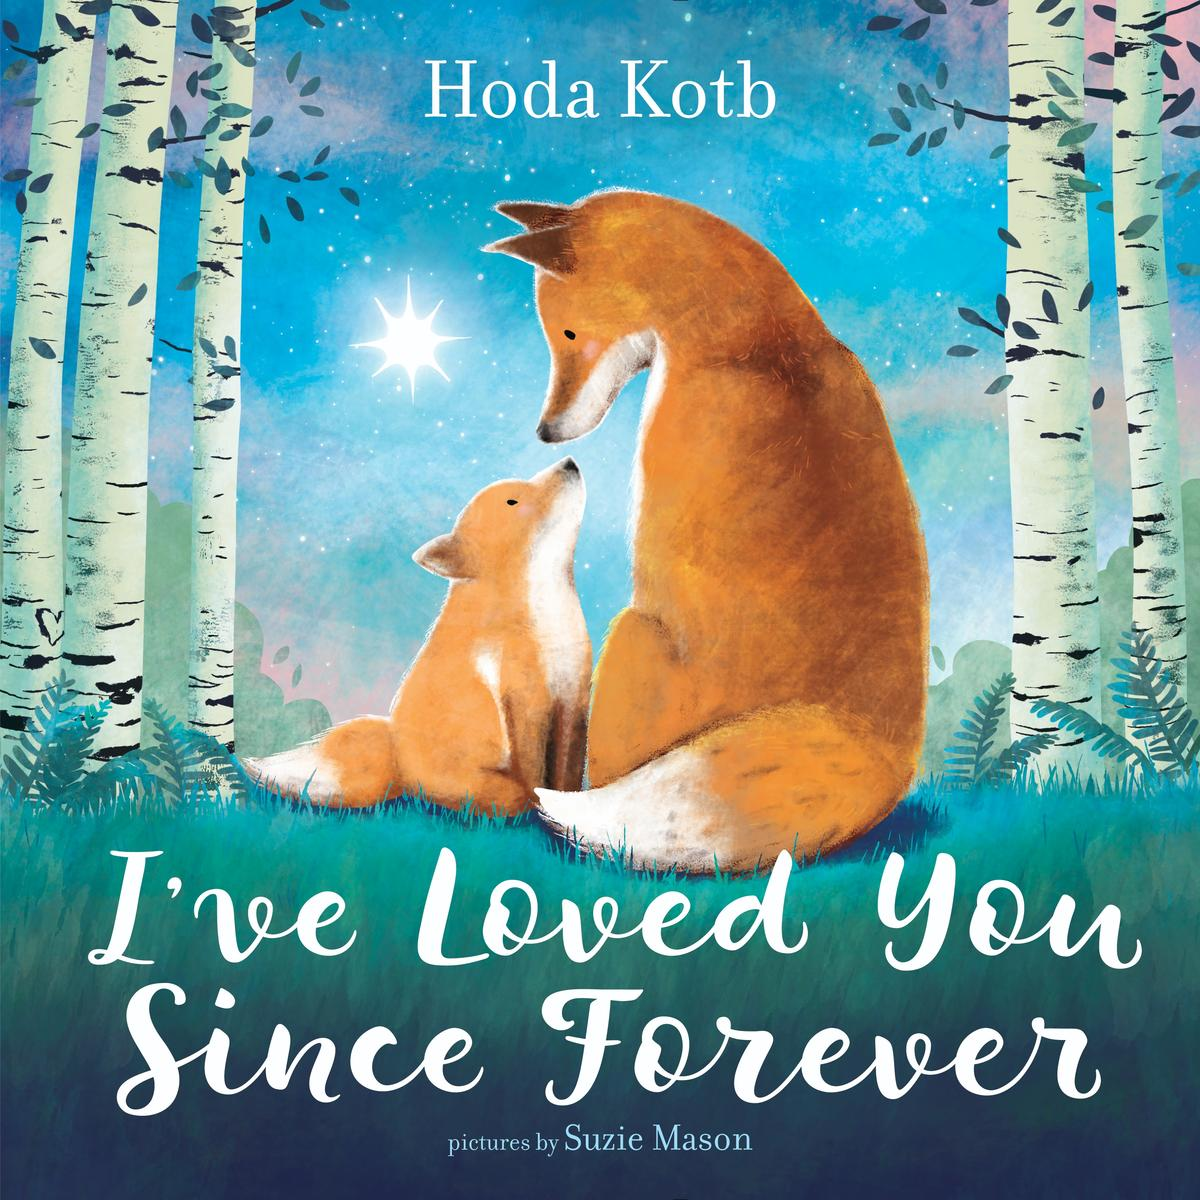 Hoda Kotb Publishes Children's Book in Honor of Adopted Daughter Haley Joy